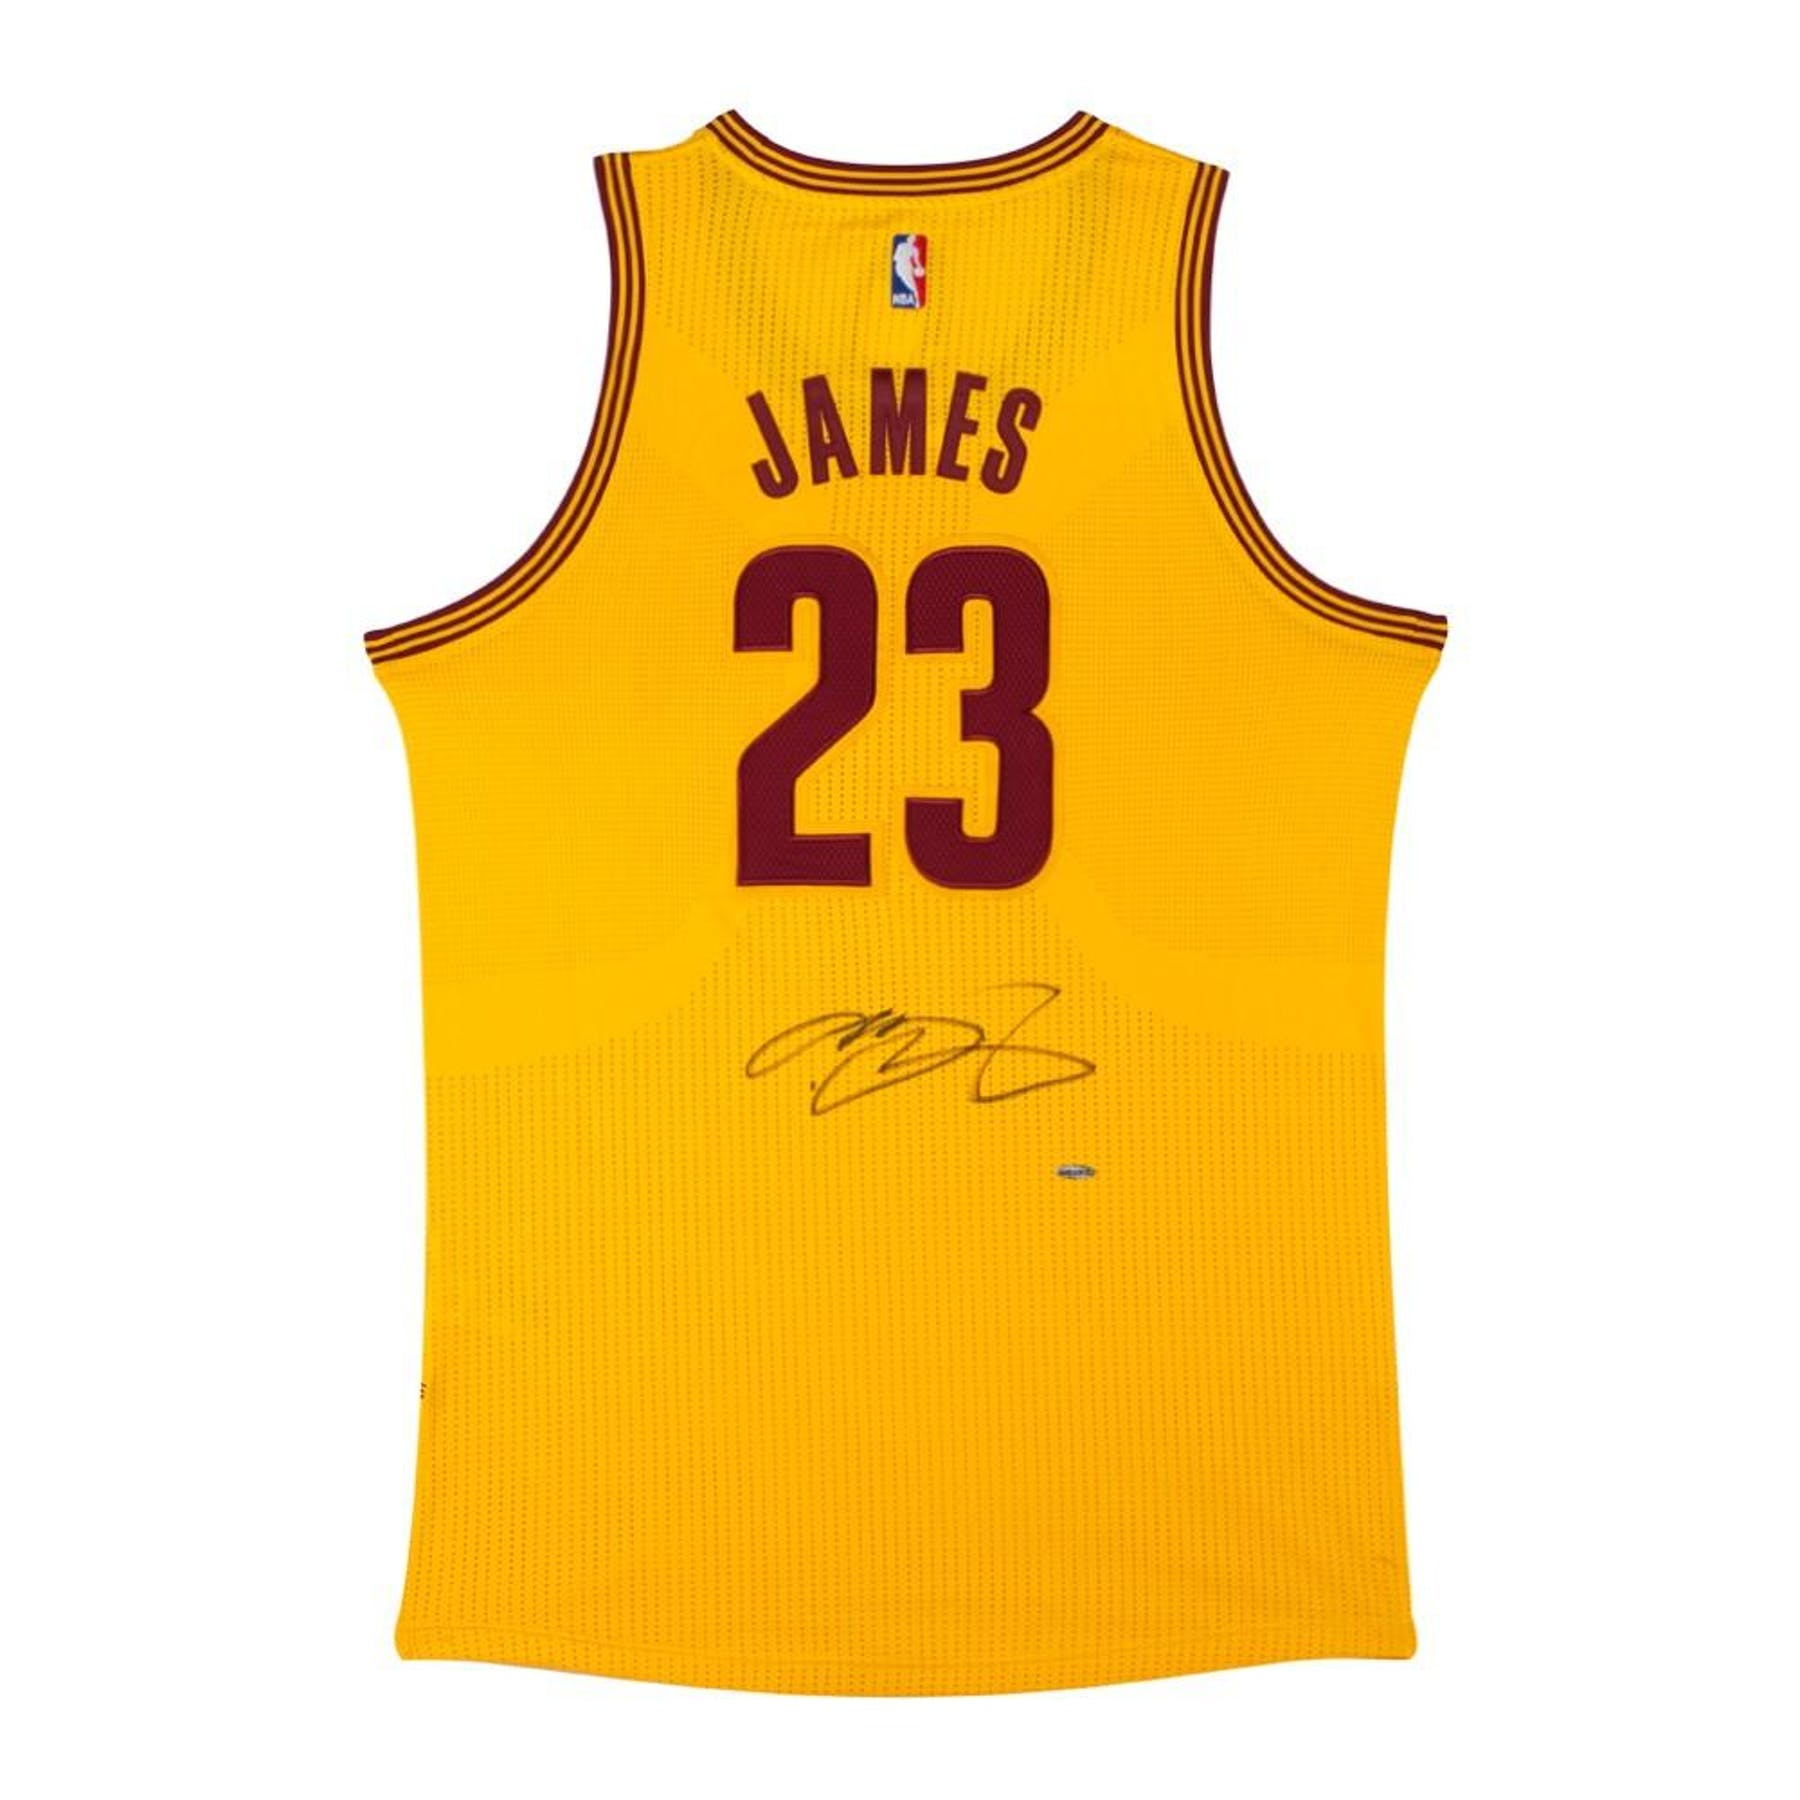 brand new c28a3 80040 LeBron James Autographed Cleveland Cavaliers Yellow Basketball Jersey UDA